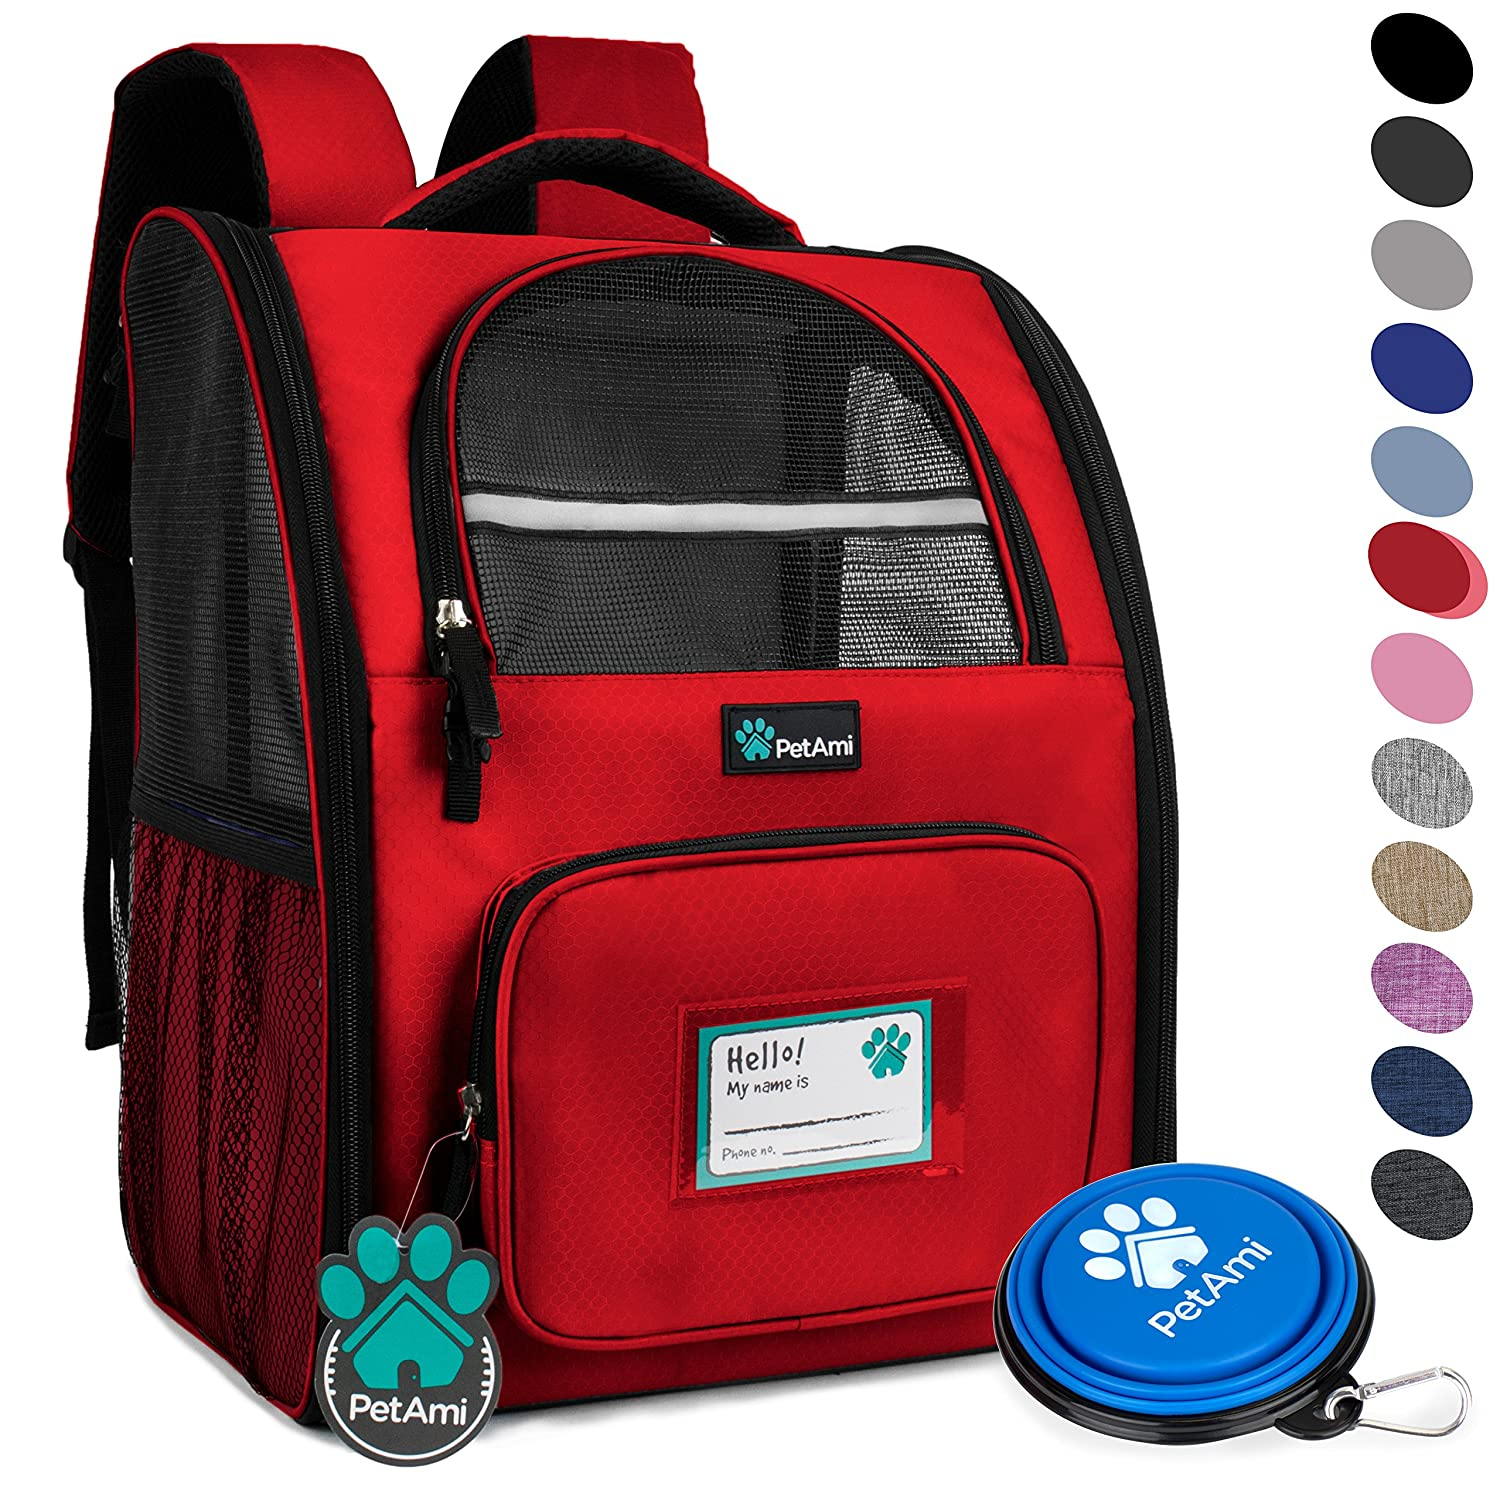 PetAmi Deluxe Pet Carrier Backpack for Small Cats and Dogs